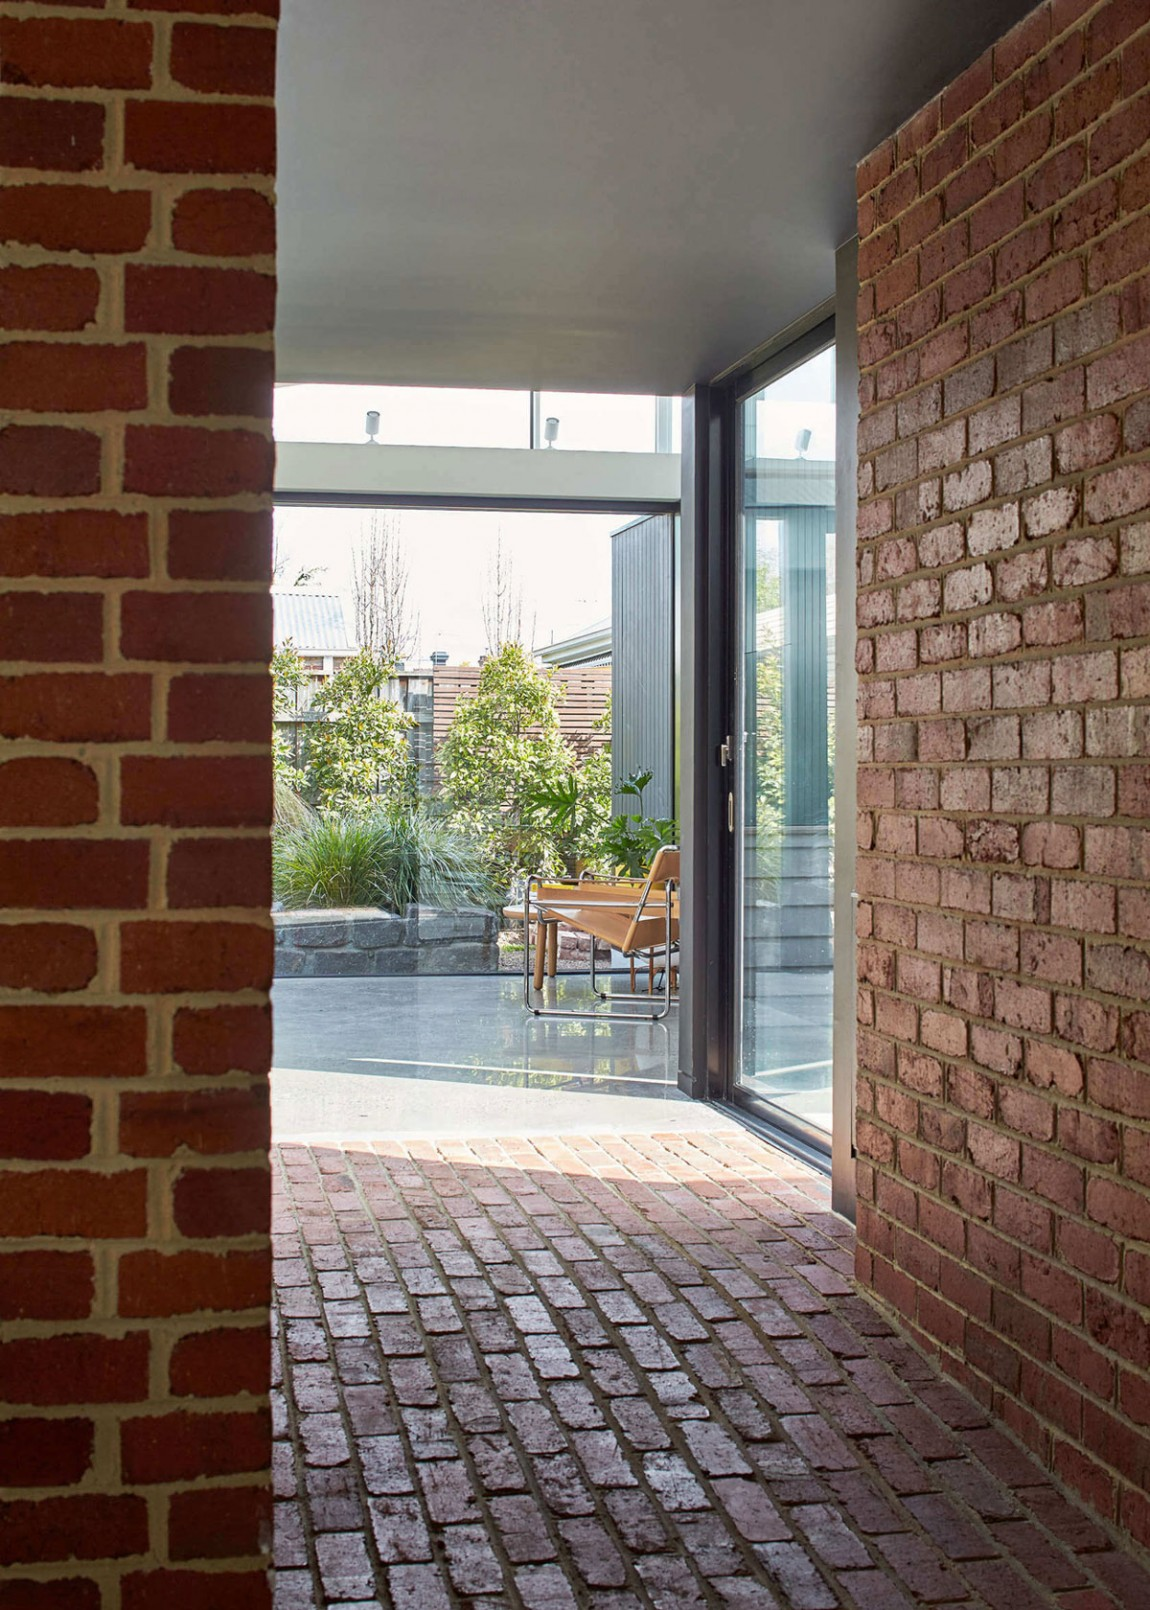 Use of glass doors brings in ample natural light